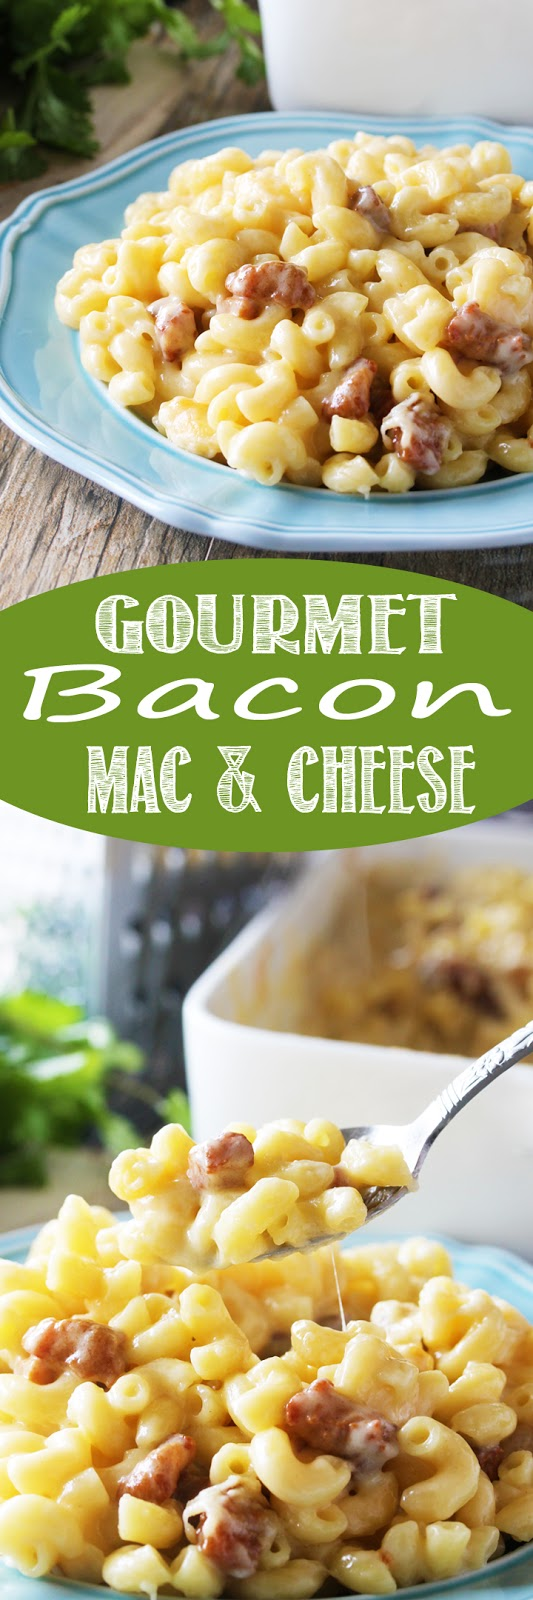 Crispy pork belly and 5 different kinds of cheese melted together to create the ultimate Gourmet Bacon Mac and Cheese. This is the kind of macaroni and cheese adults can swoon over.